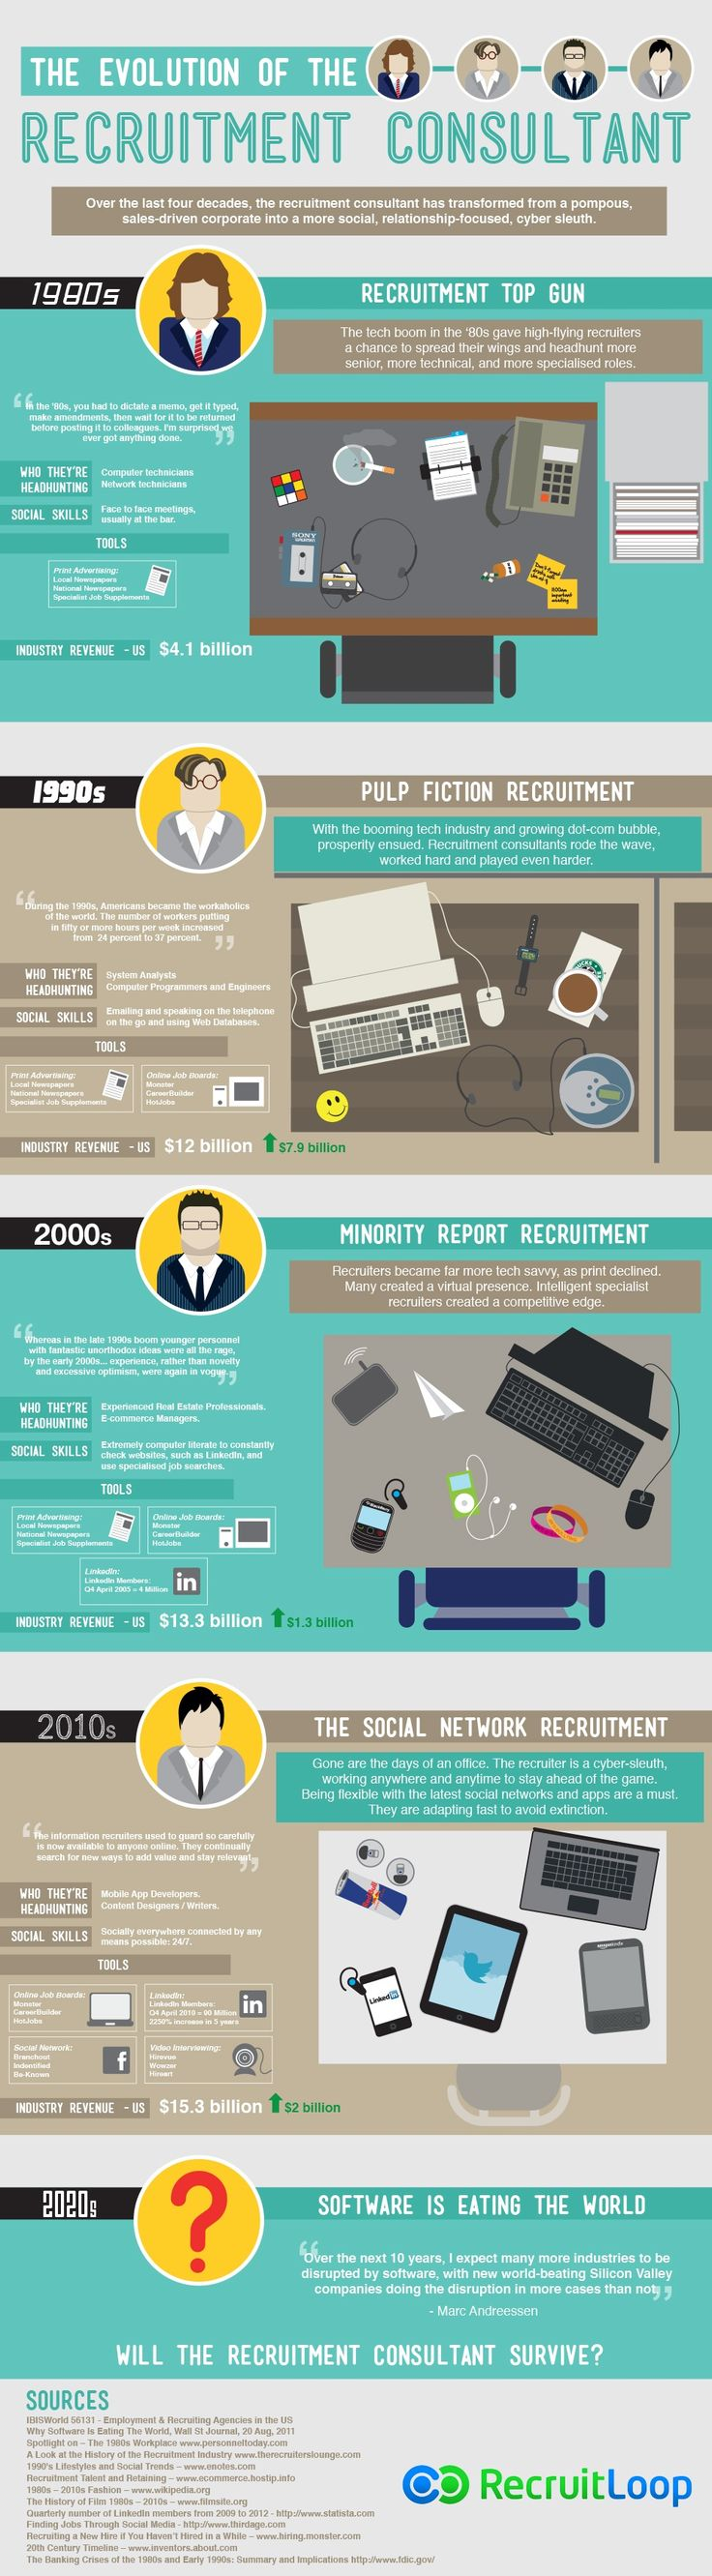 Th evolution of the recruitment consultant #infographic